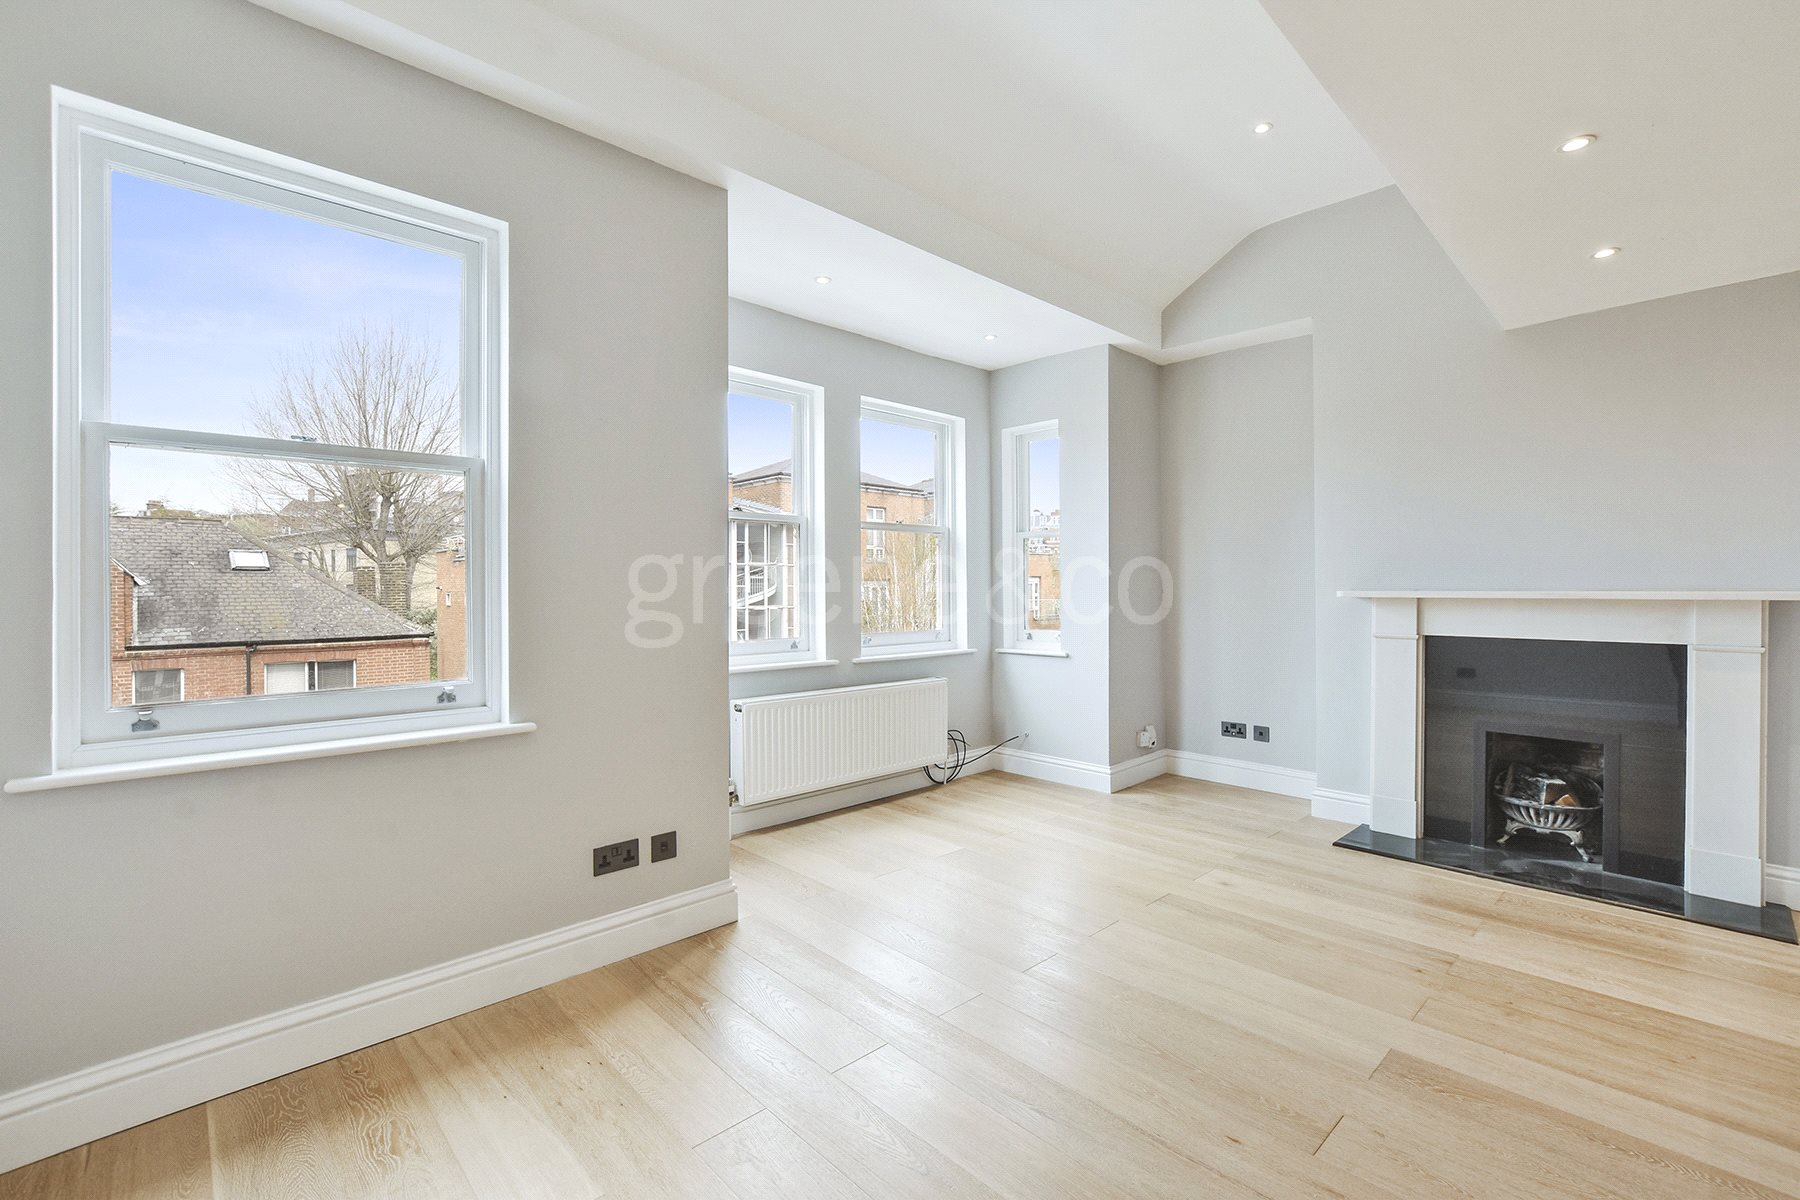 3 Bedrooms Flat for sale in Lithos Road, South Hampstead, NW3